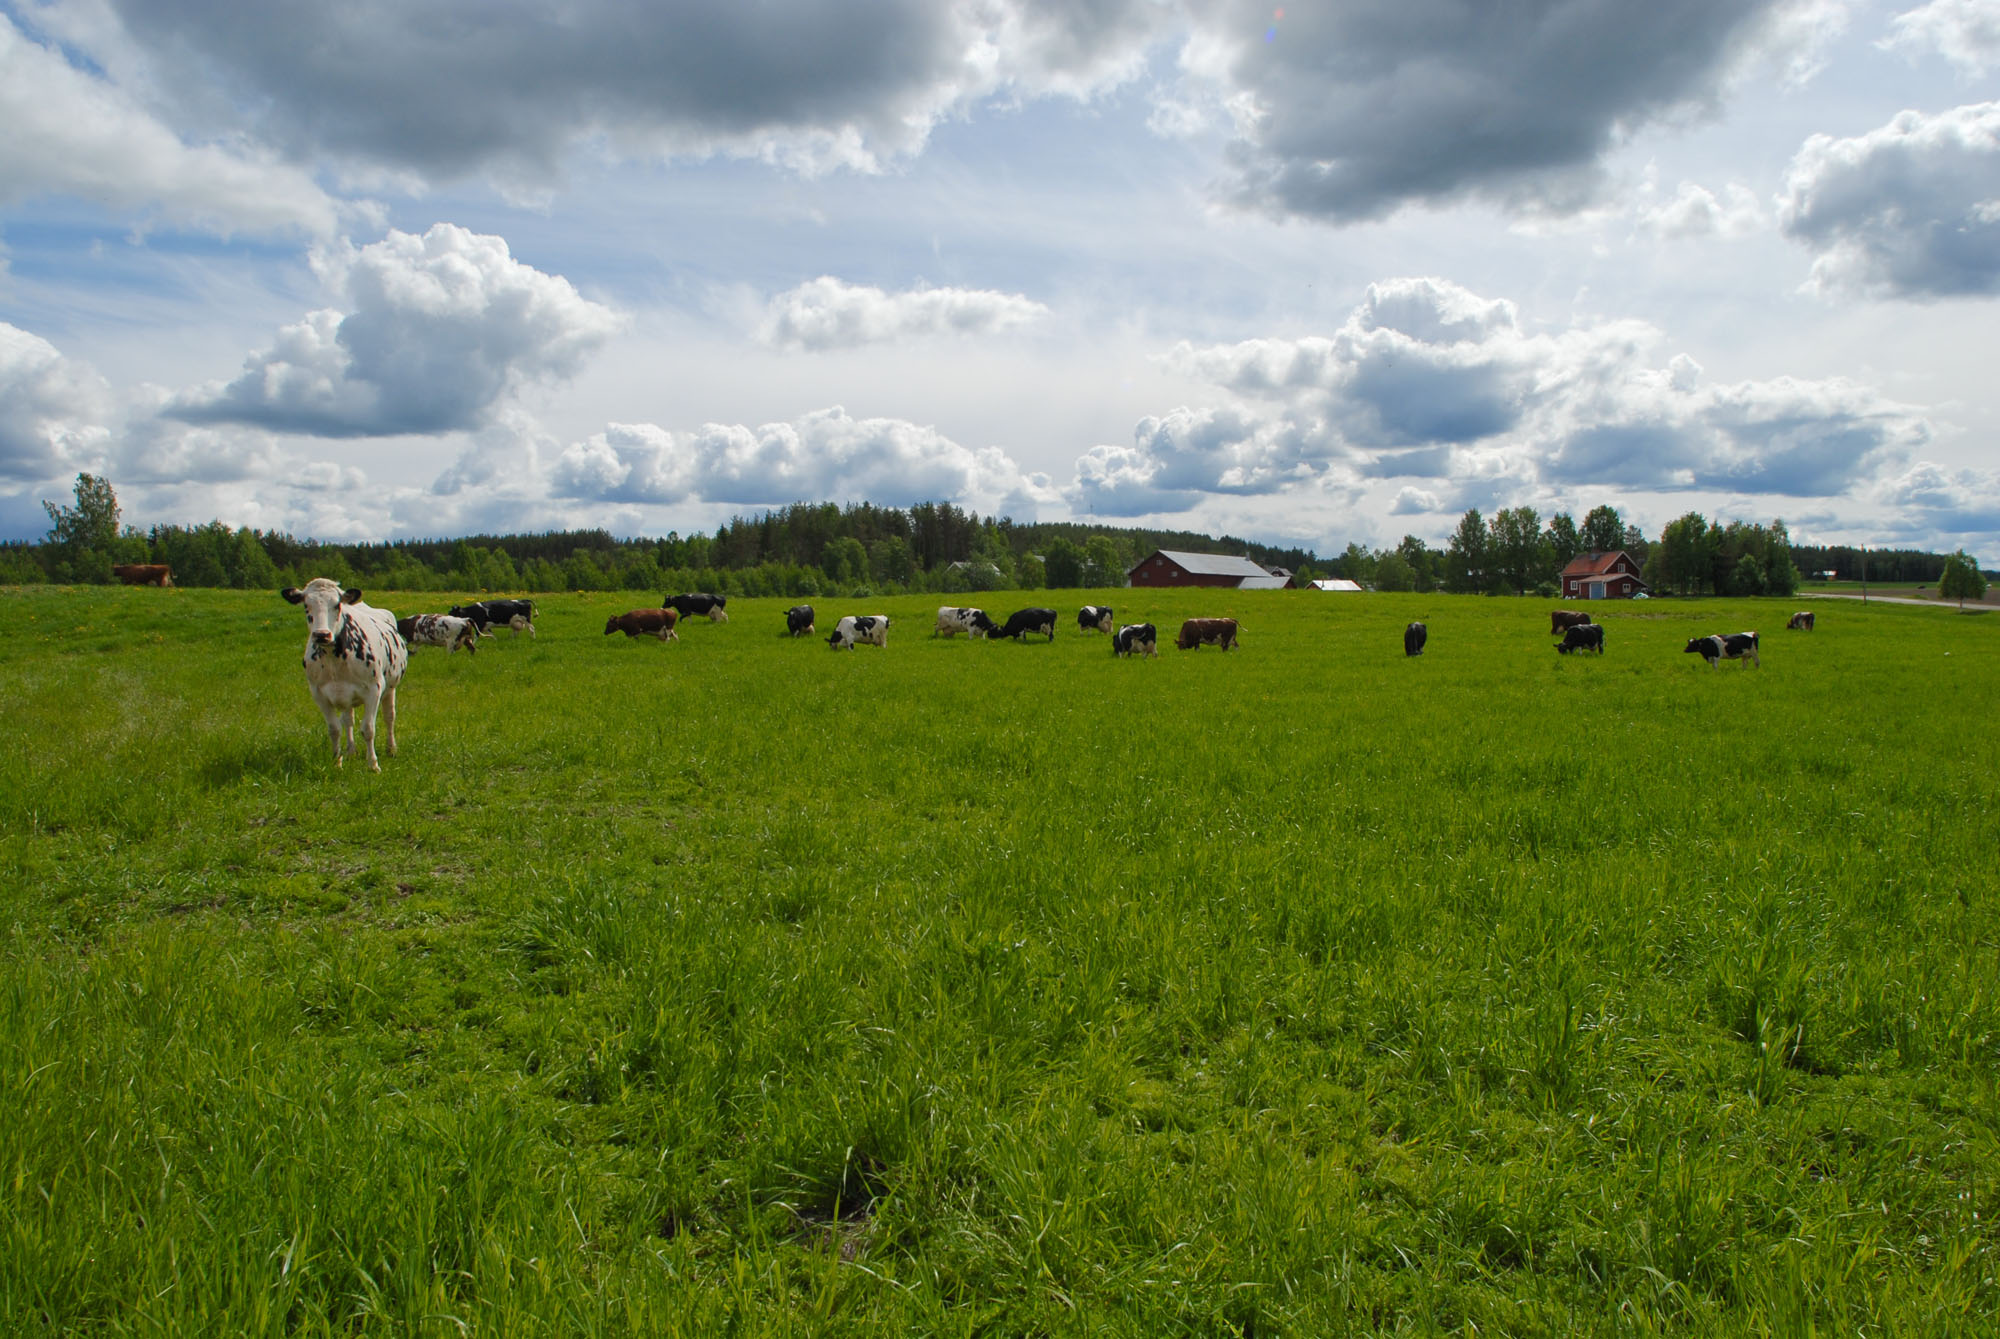 Cows grazing in the fresh green pasture.